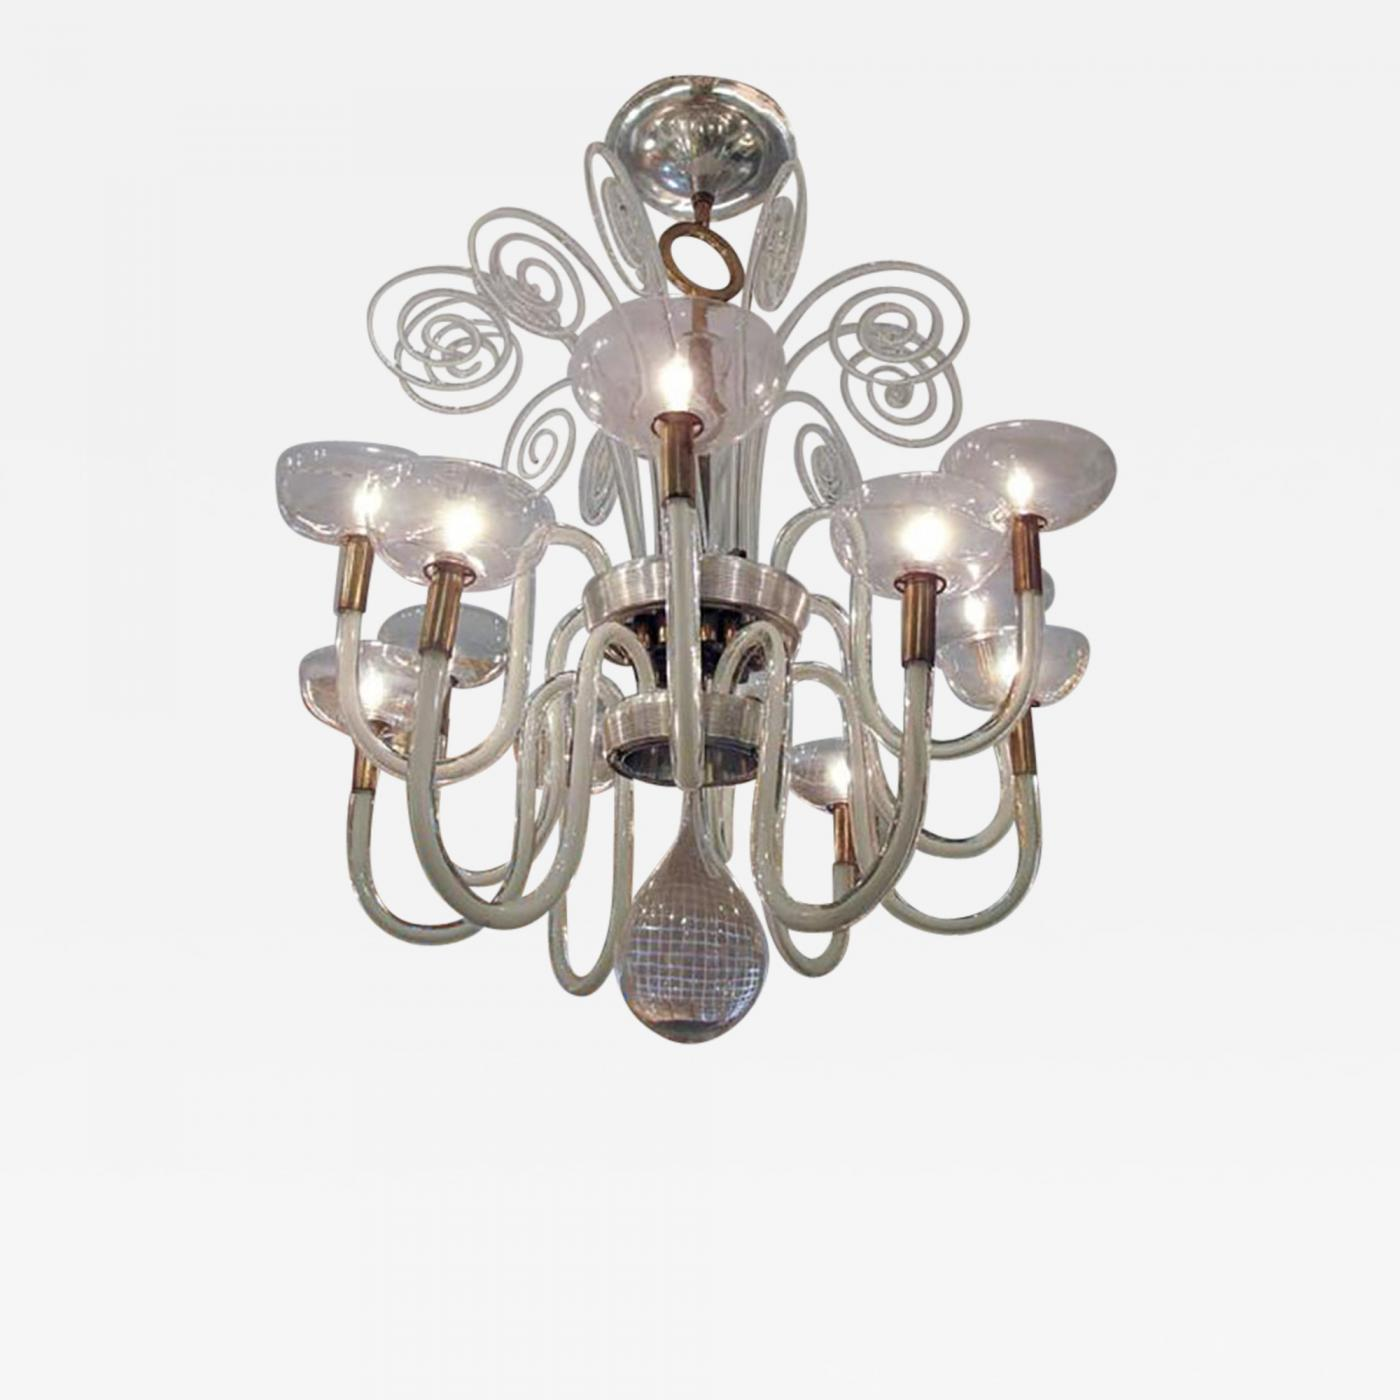 Carlo scarpa important vintage venini chandelier by carlo scarpa listings furniture lighting chandeliers and pendants aloadofball Images